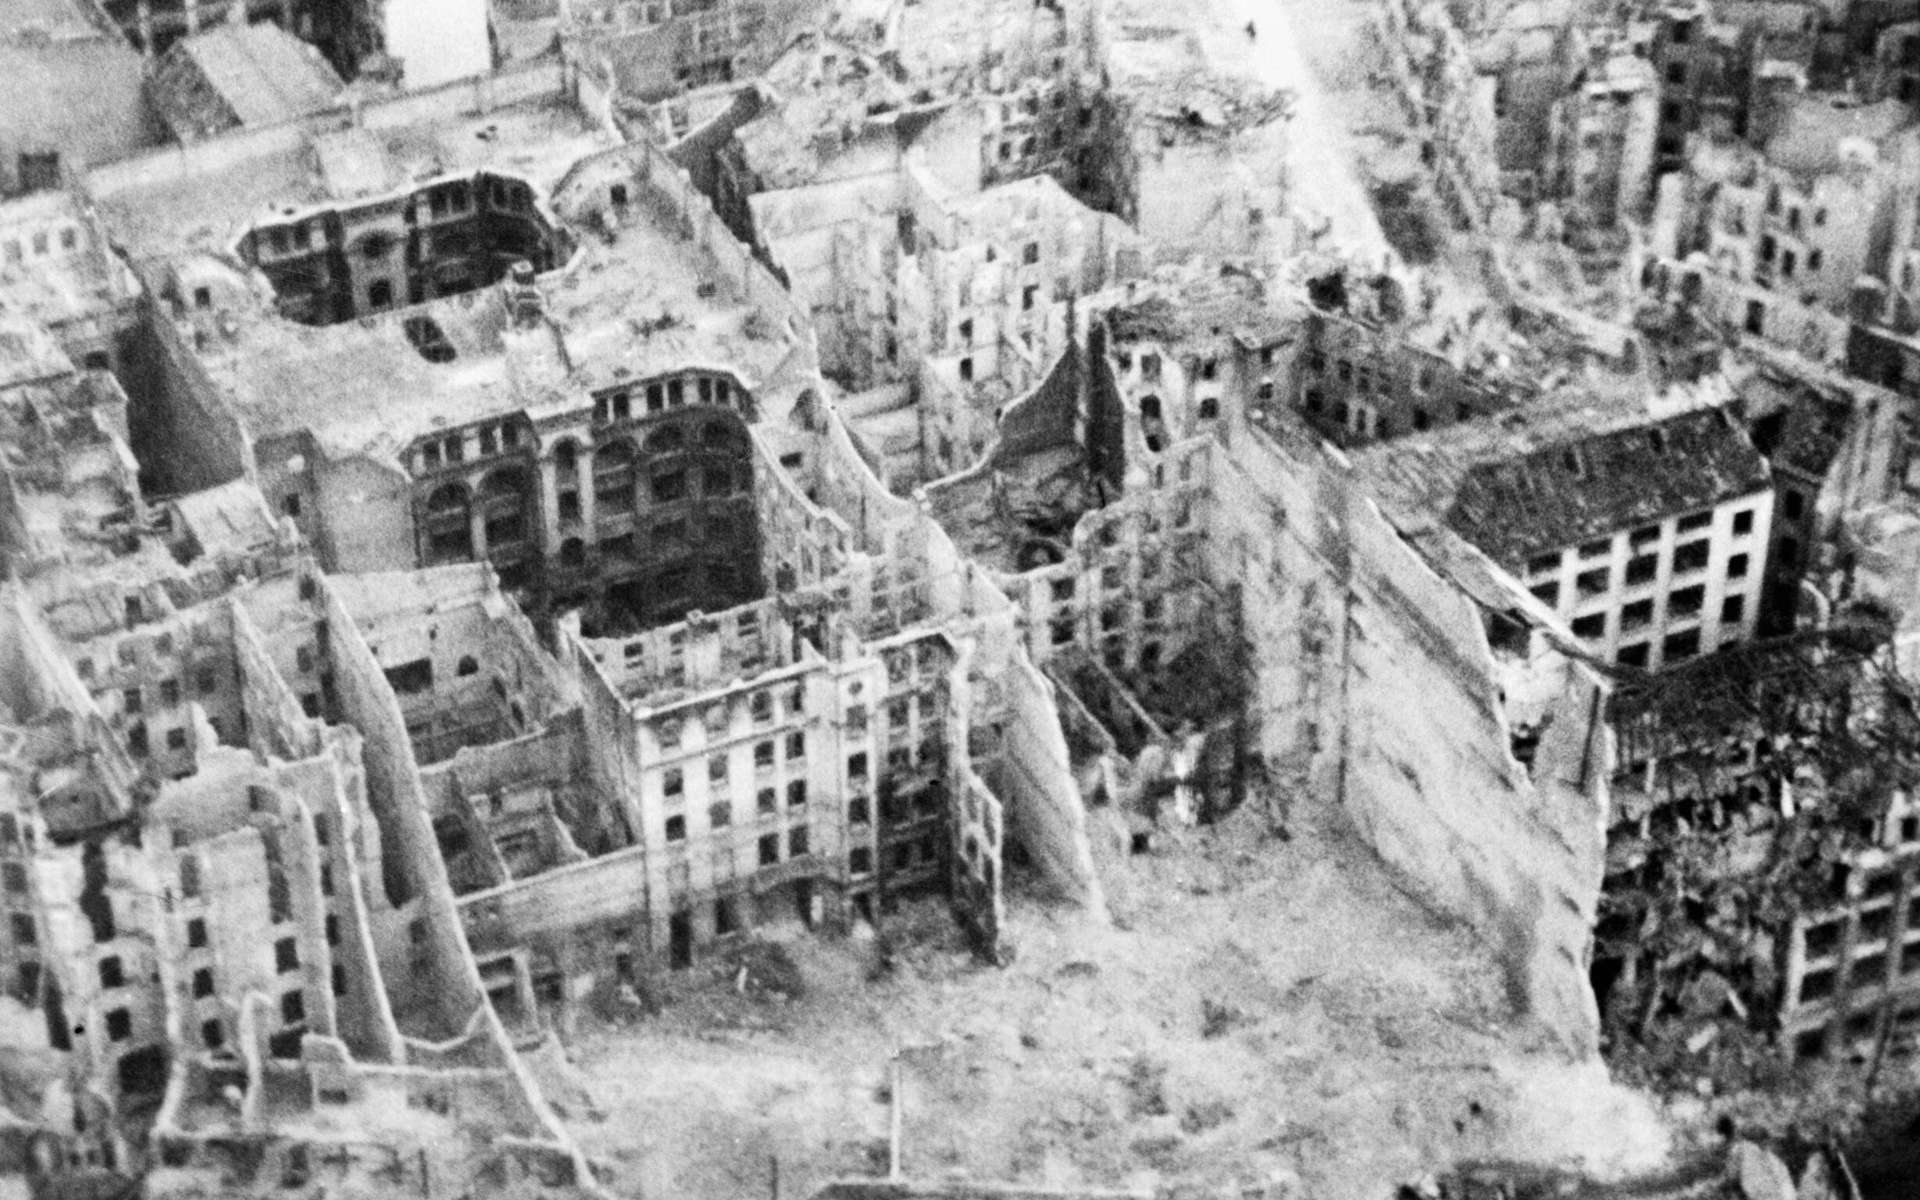 Berlin en 1945. Le IIIe Reich a survécu huit jours à la mort d'Adolf Hitler. © Royal Air Force official